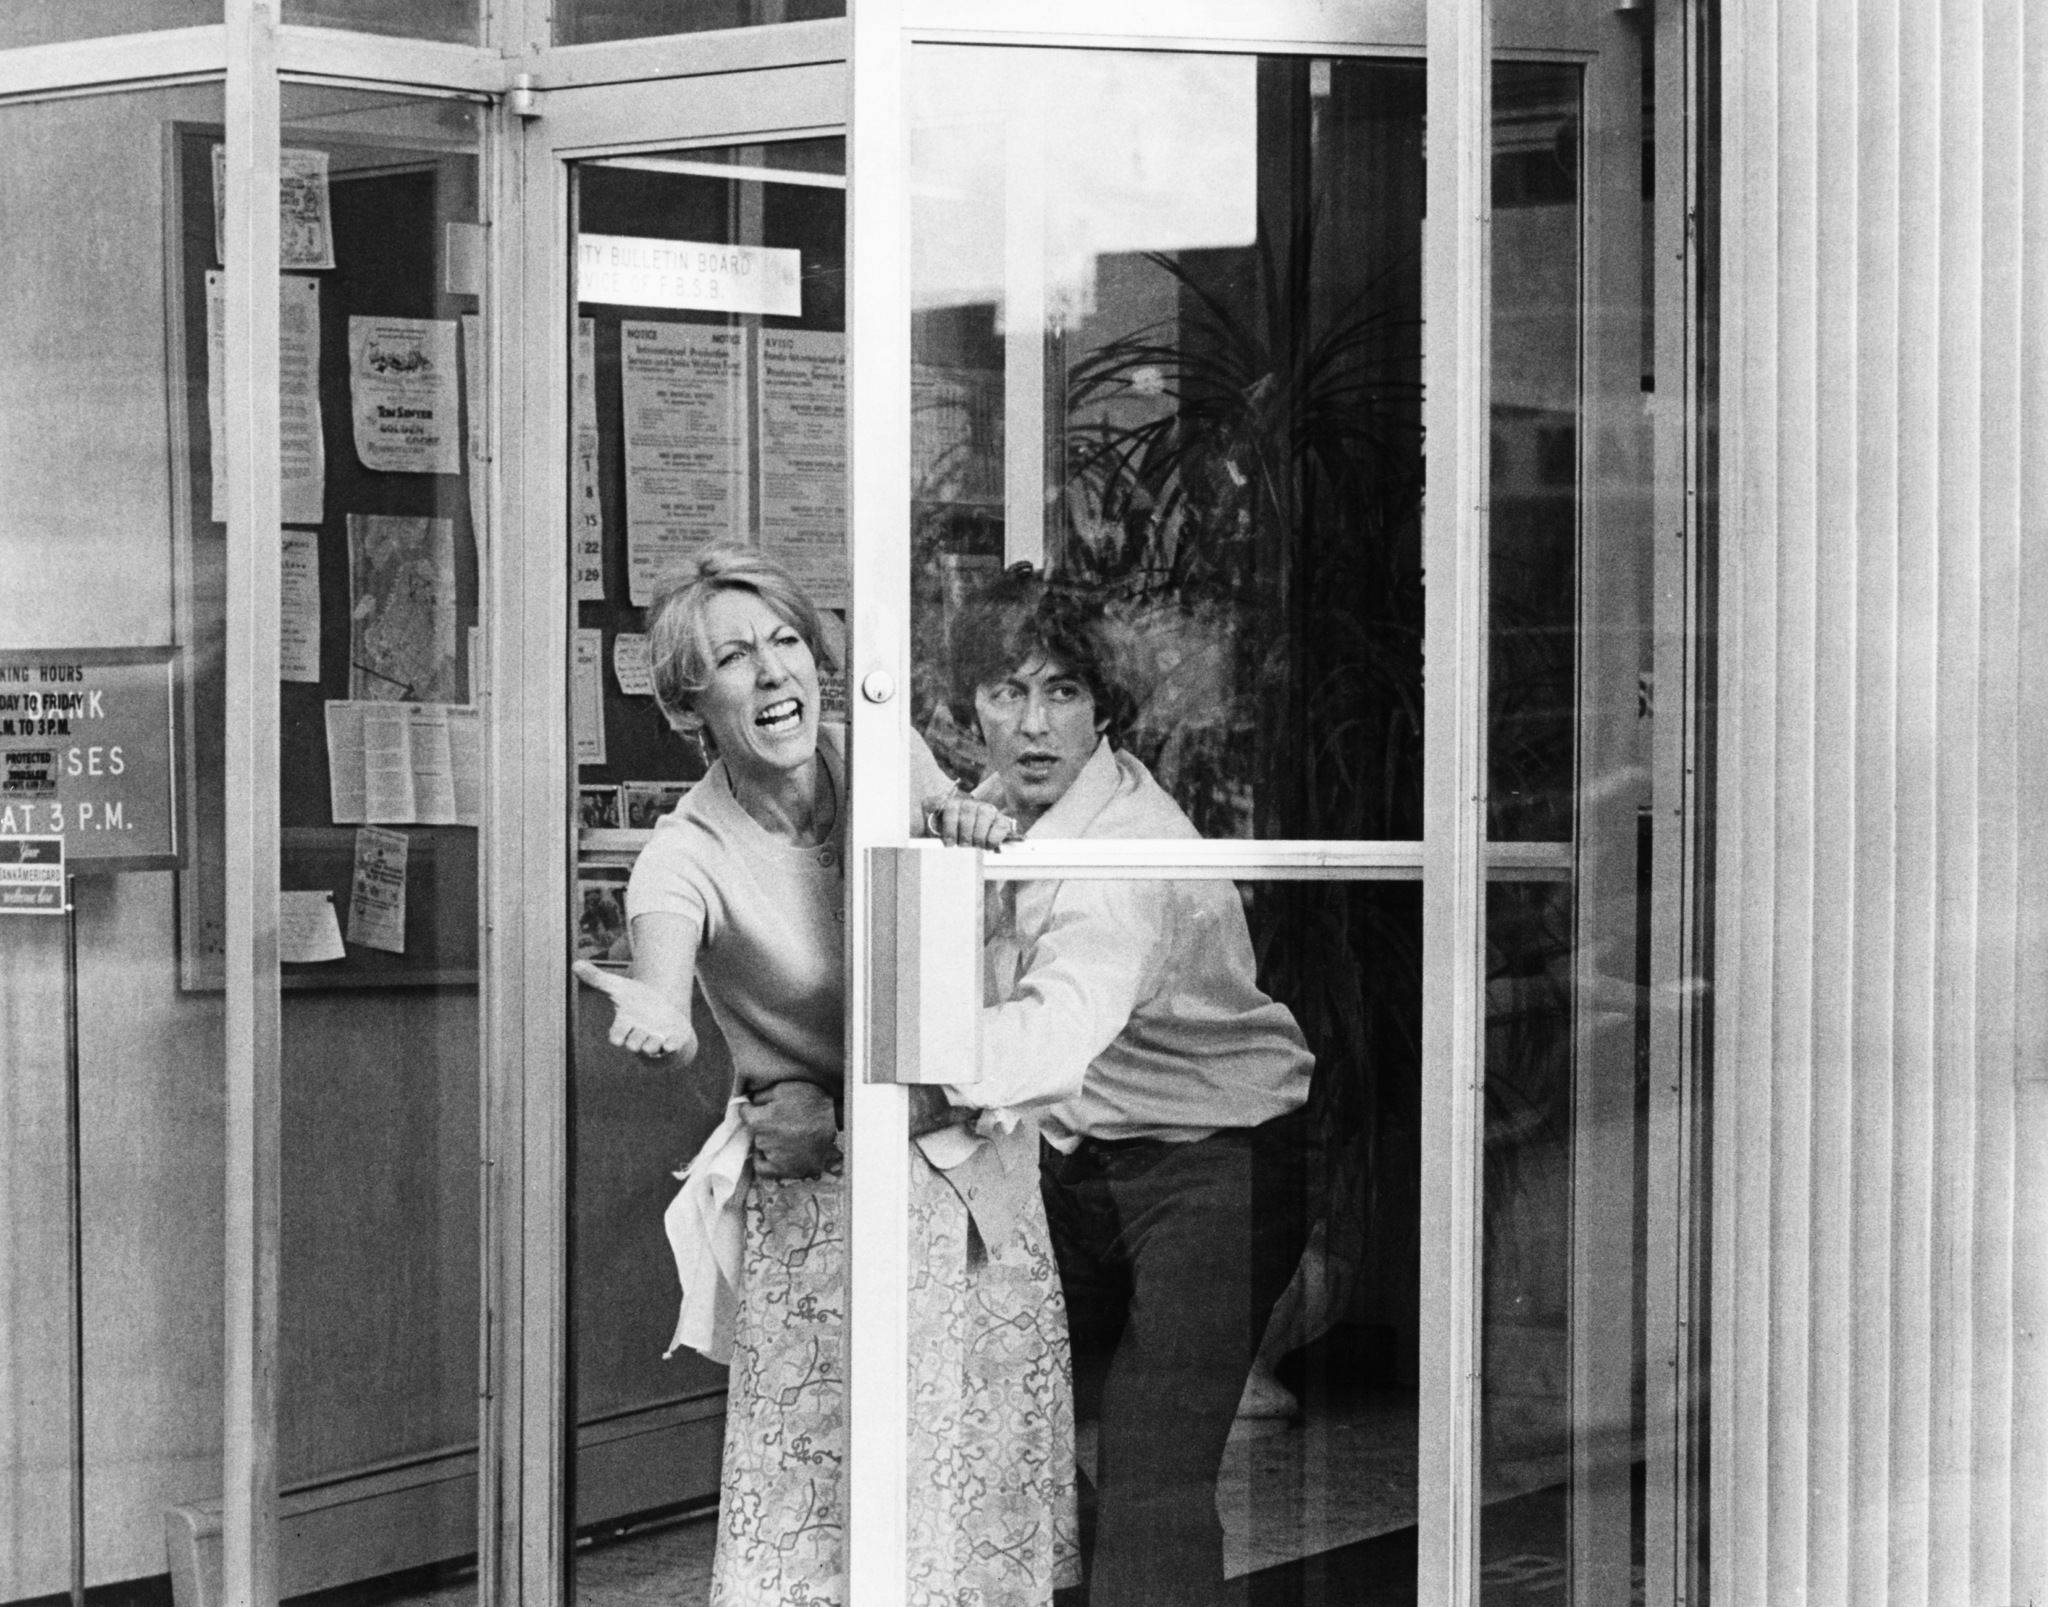 Al Pacino and Penelope Allen in Dog Day Afternoon (1975)